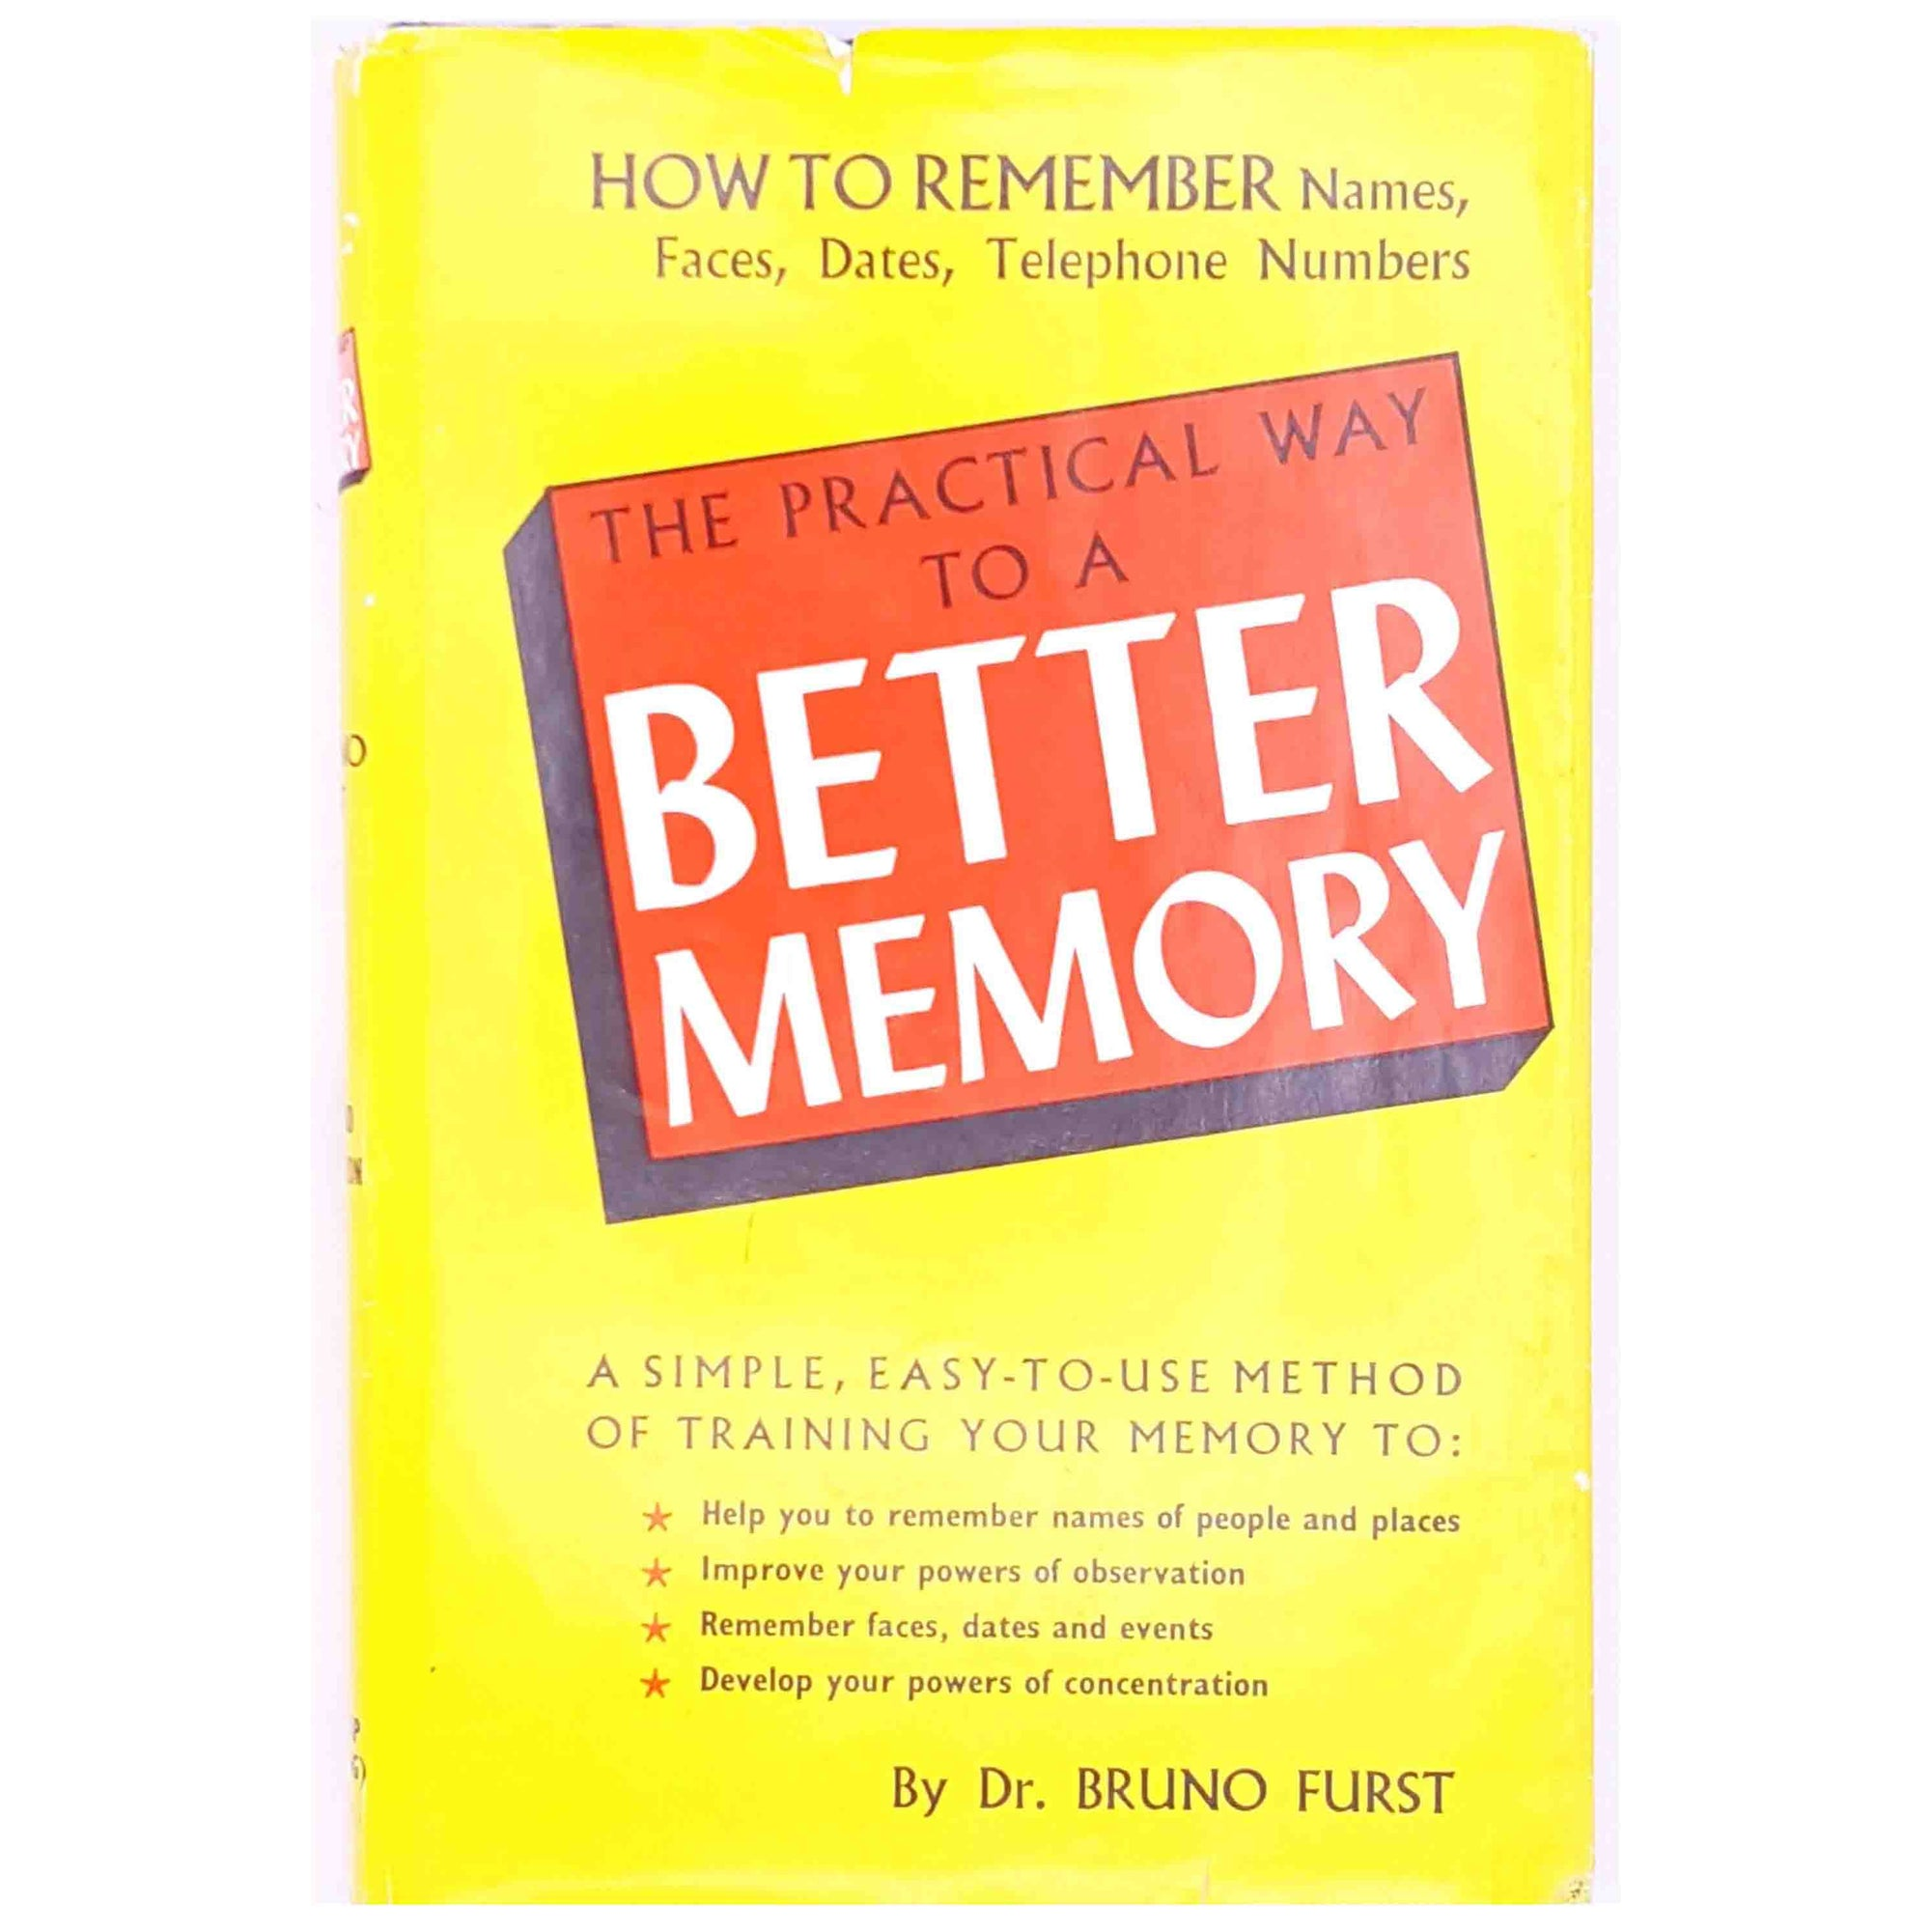 The Practical Guide To A Better Memory, Dr Bruno Furst, 1977